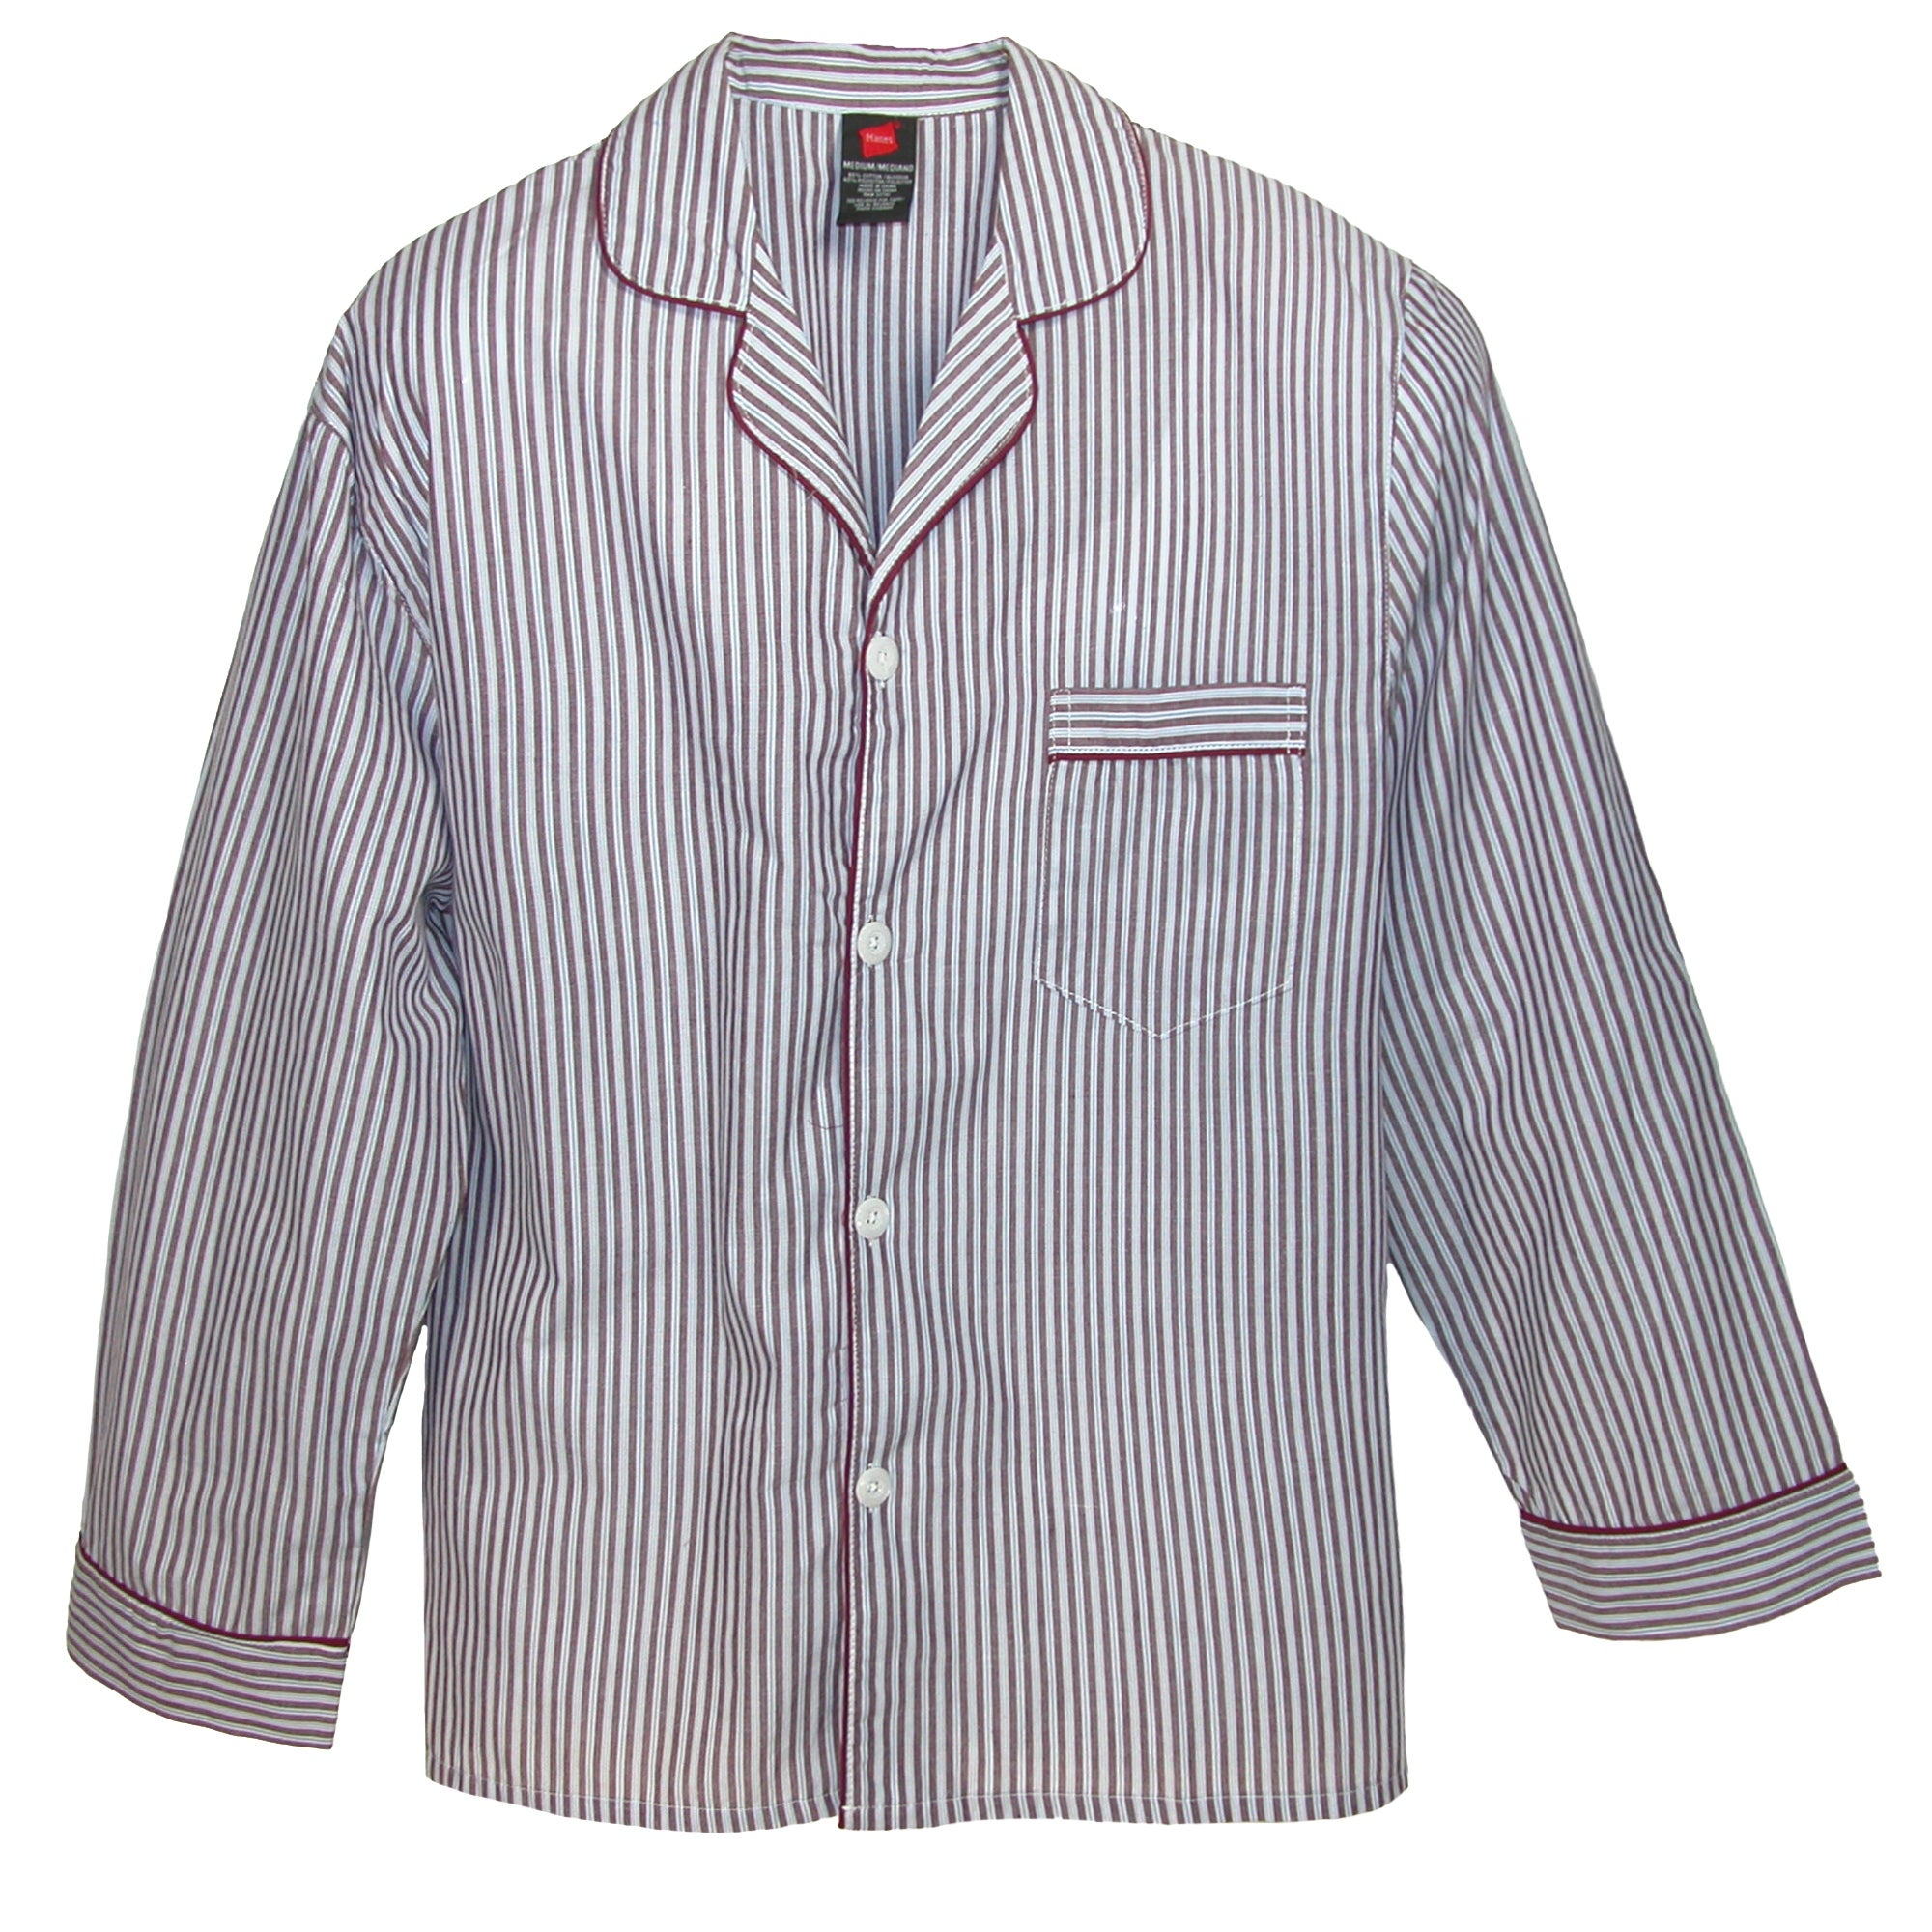 c6764b6bc8bdc Shop Hanes Men's Broadcloth Long Sleeve Pajama Set - Free Shipping On Orders  Over $45 - Overstock - 14294962